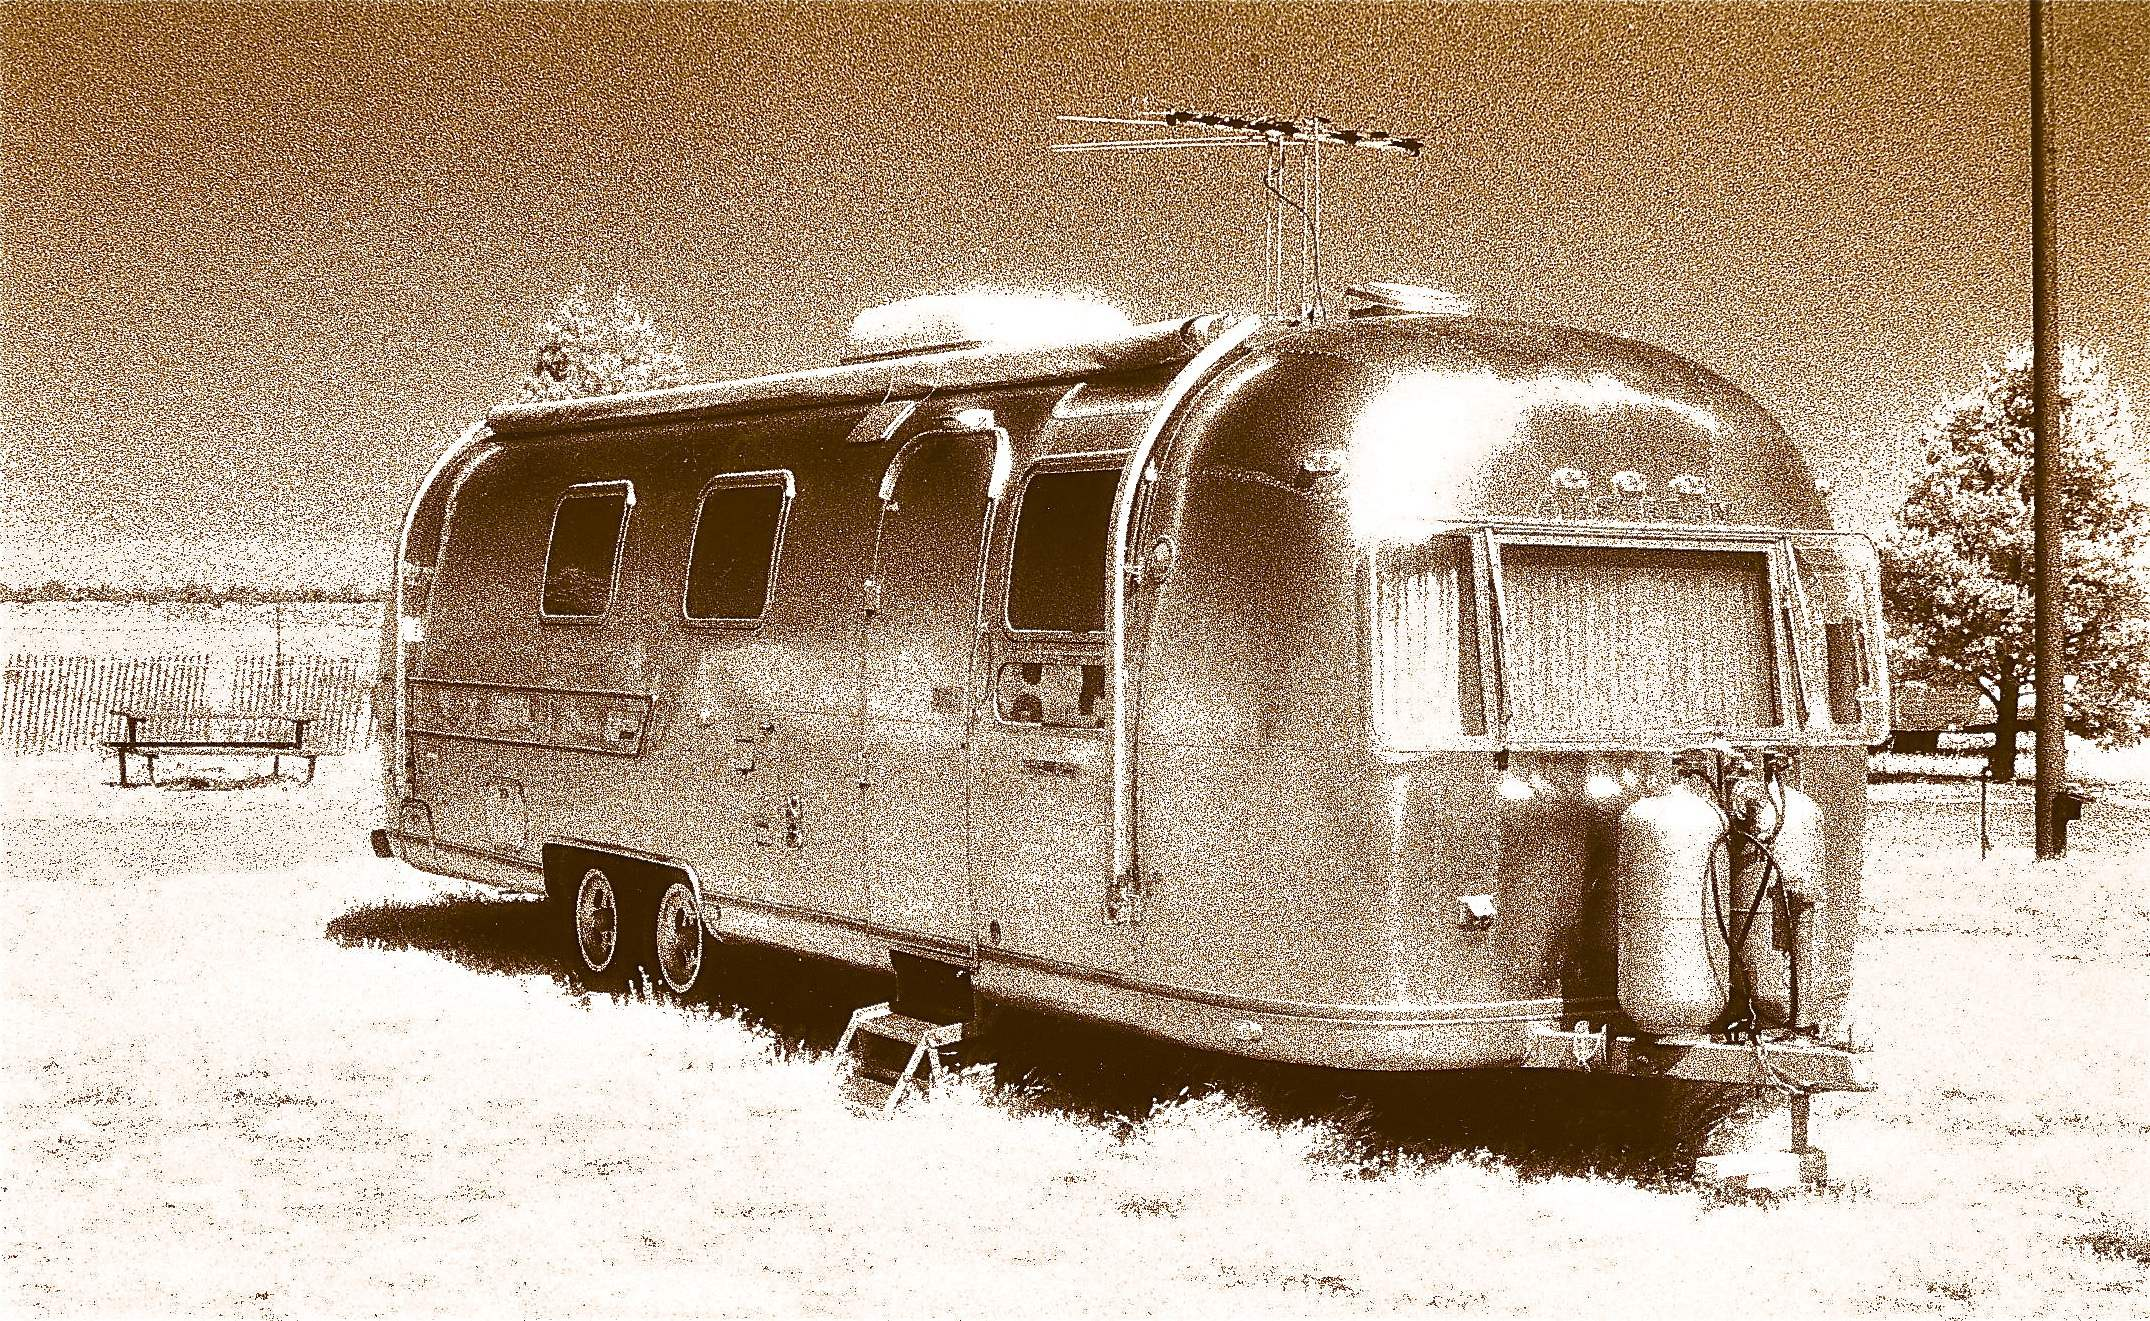 Wunderkino airstream